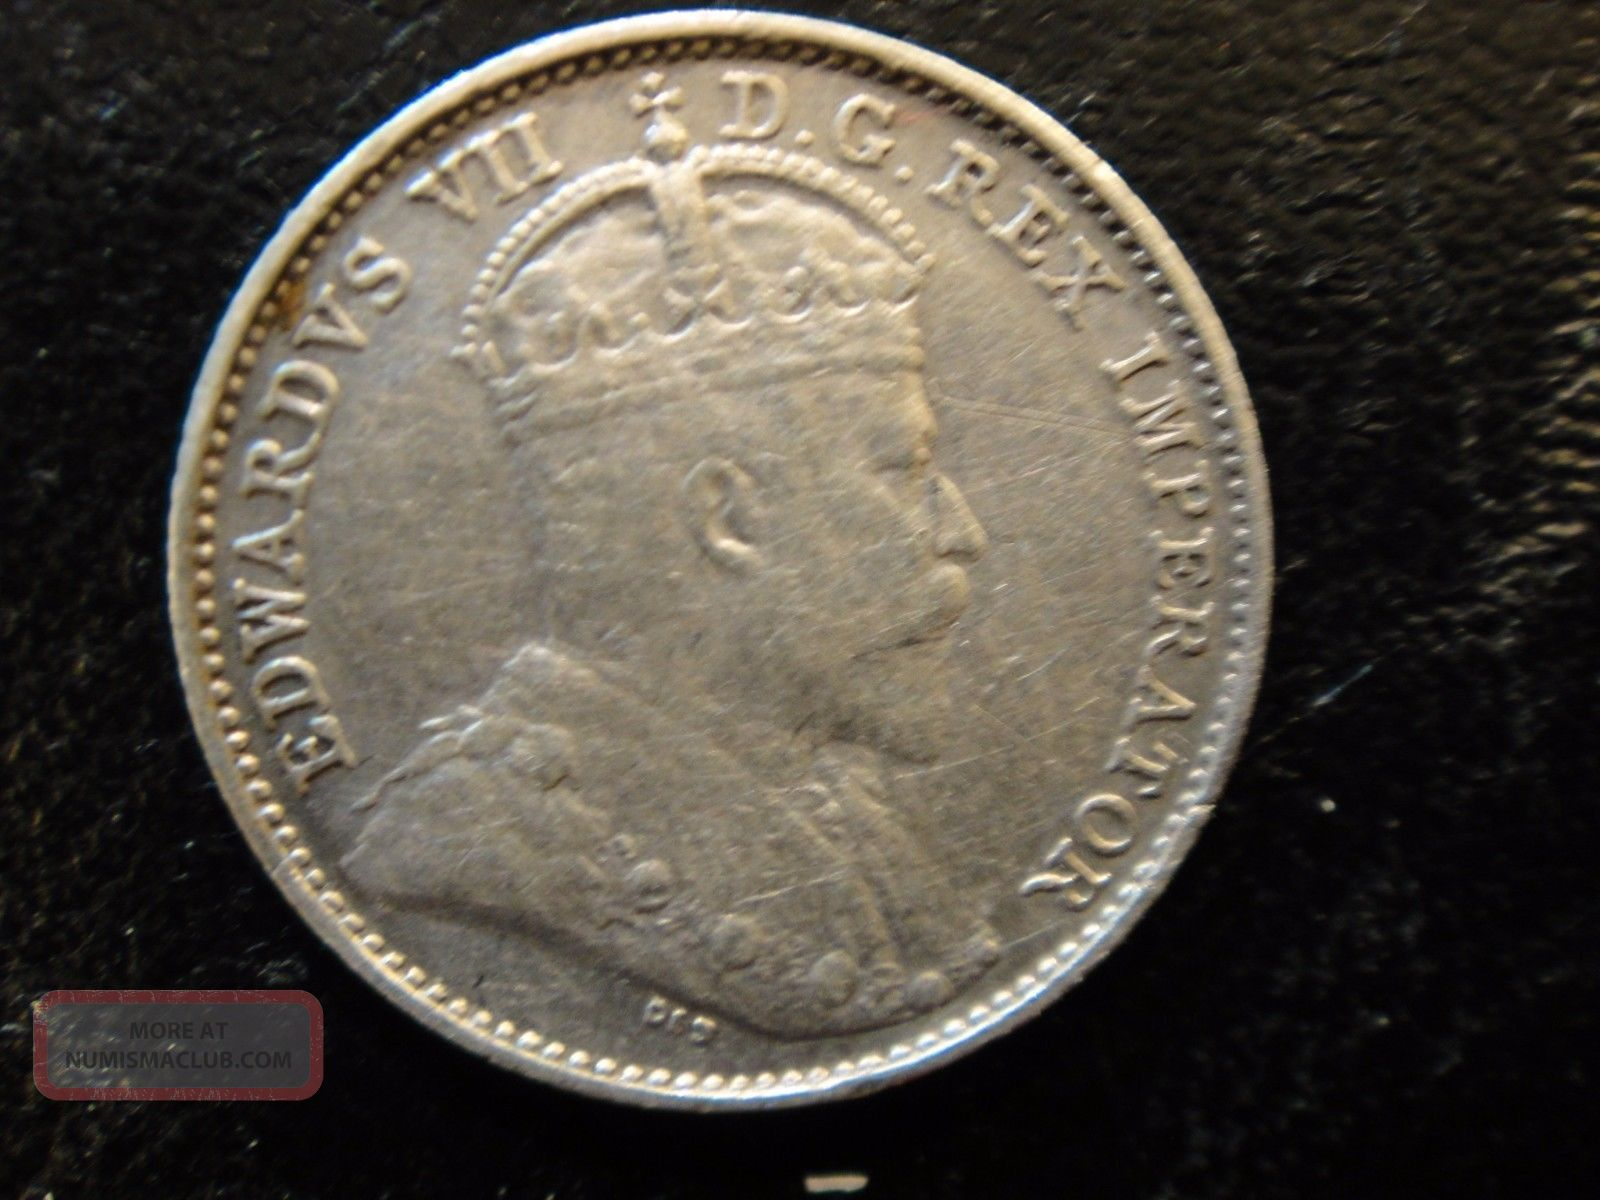 1909 Canada Edward Vii Sterling Silver 5 Cents.  Extra Fine Details (cleaned). Coins: Canada photo